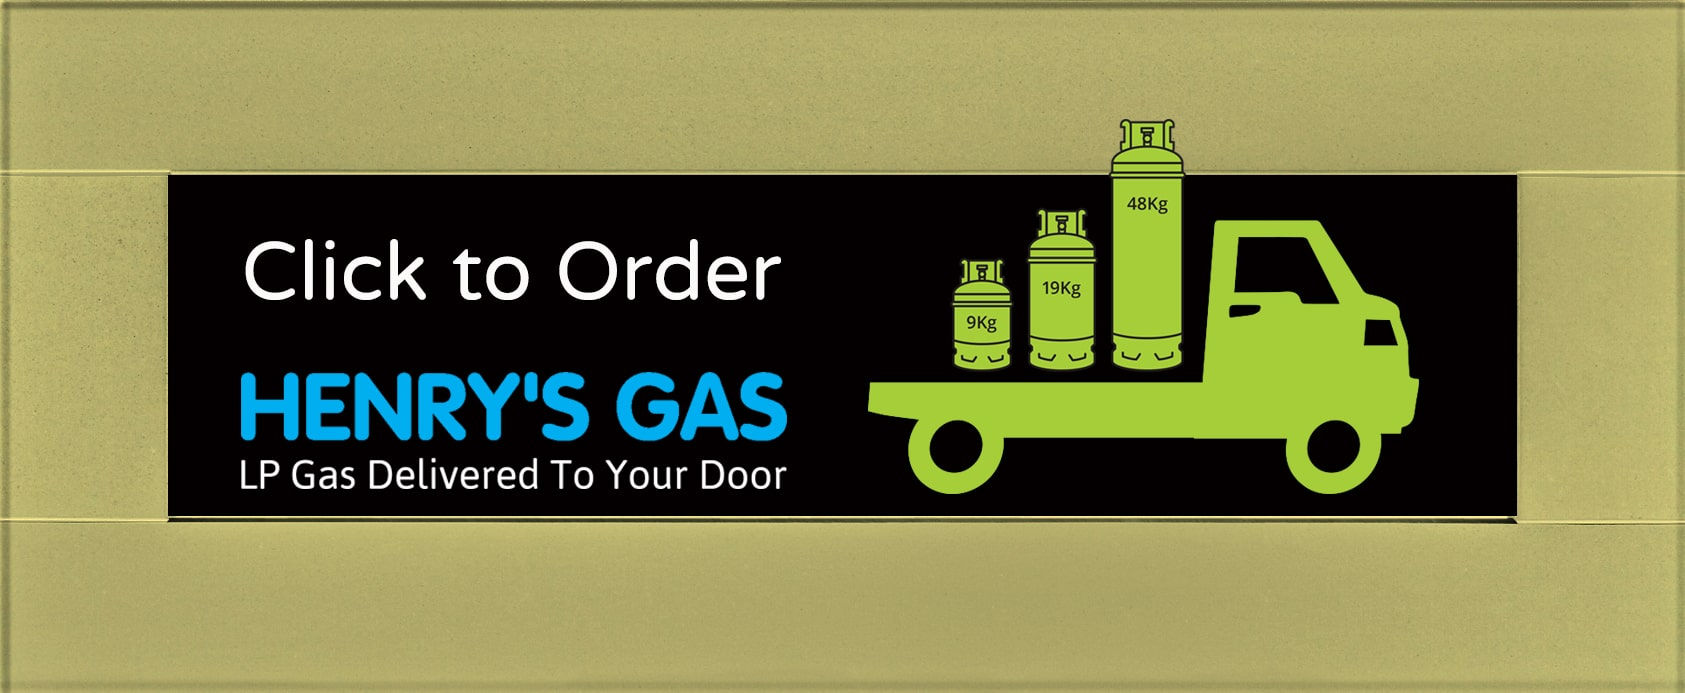 Gas Heater Appliances Safety - click to order gas